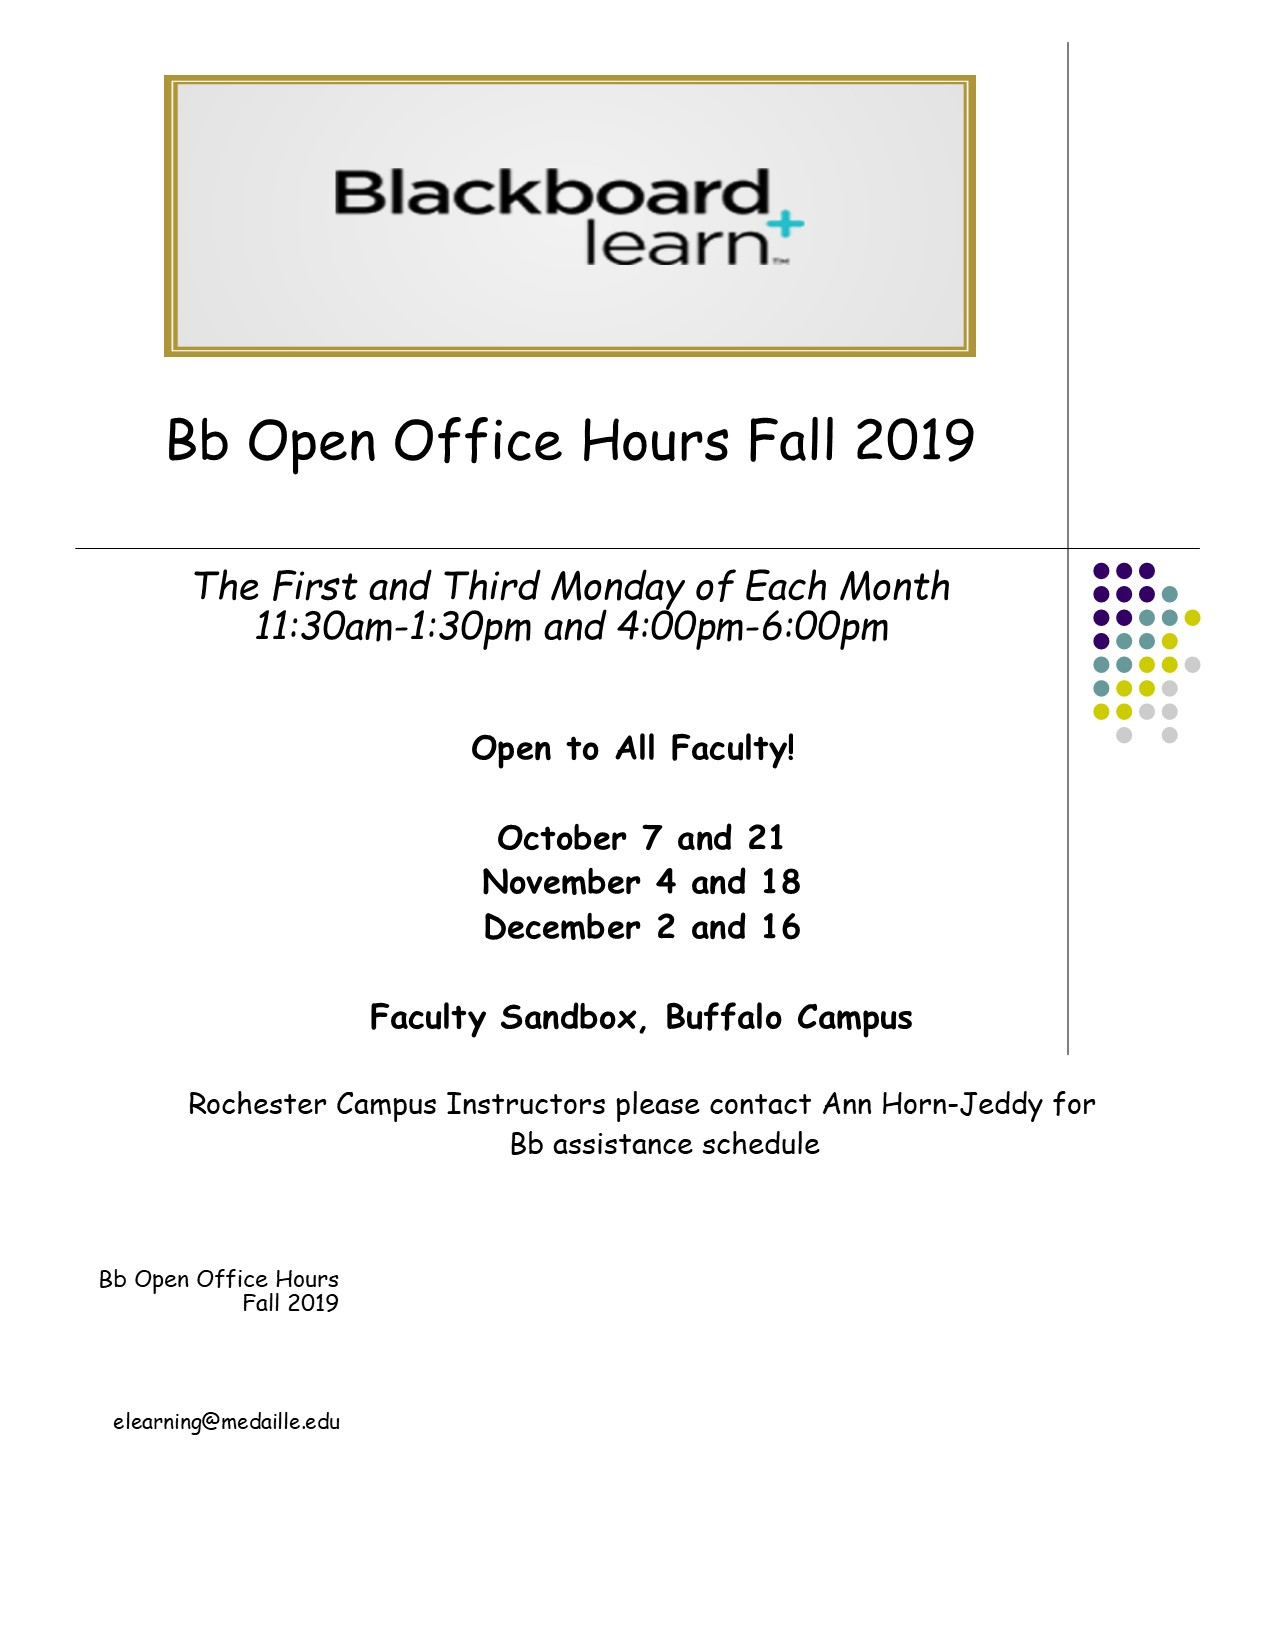 blackboard open hours